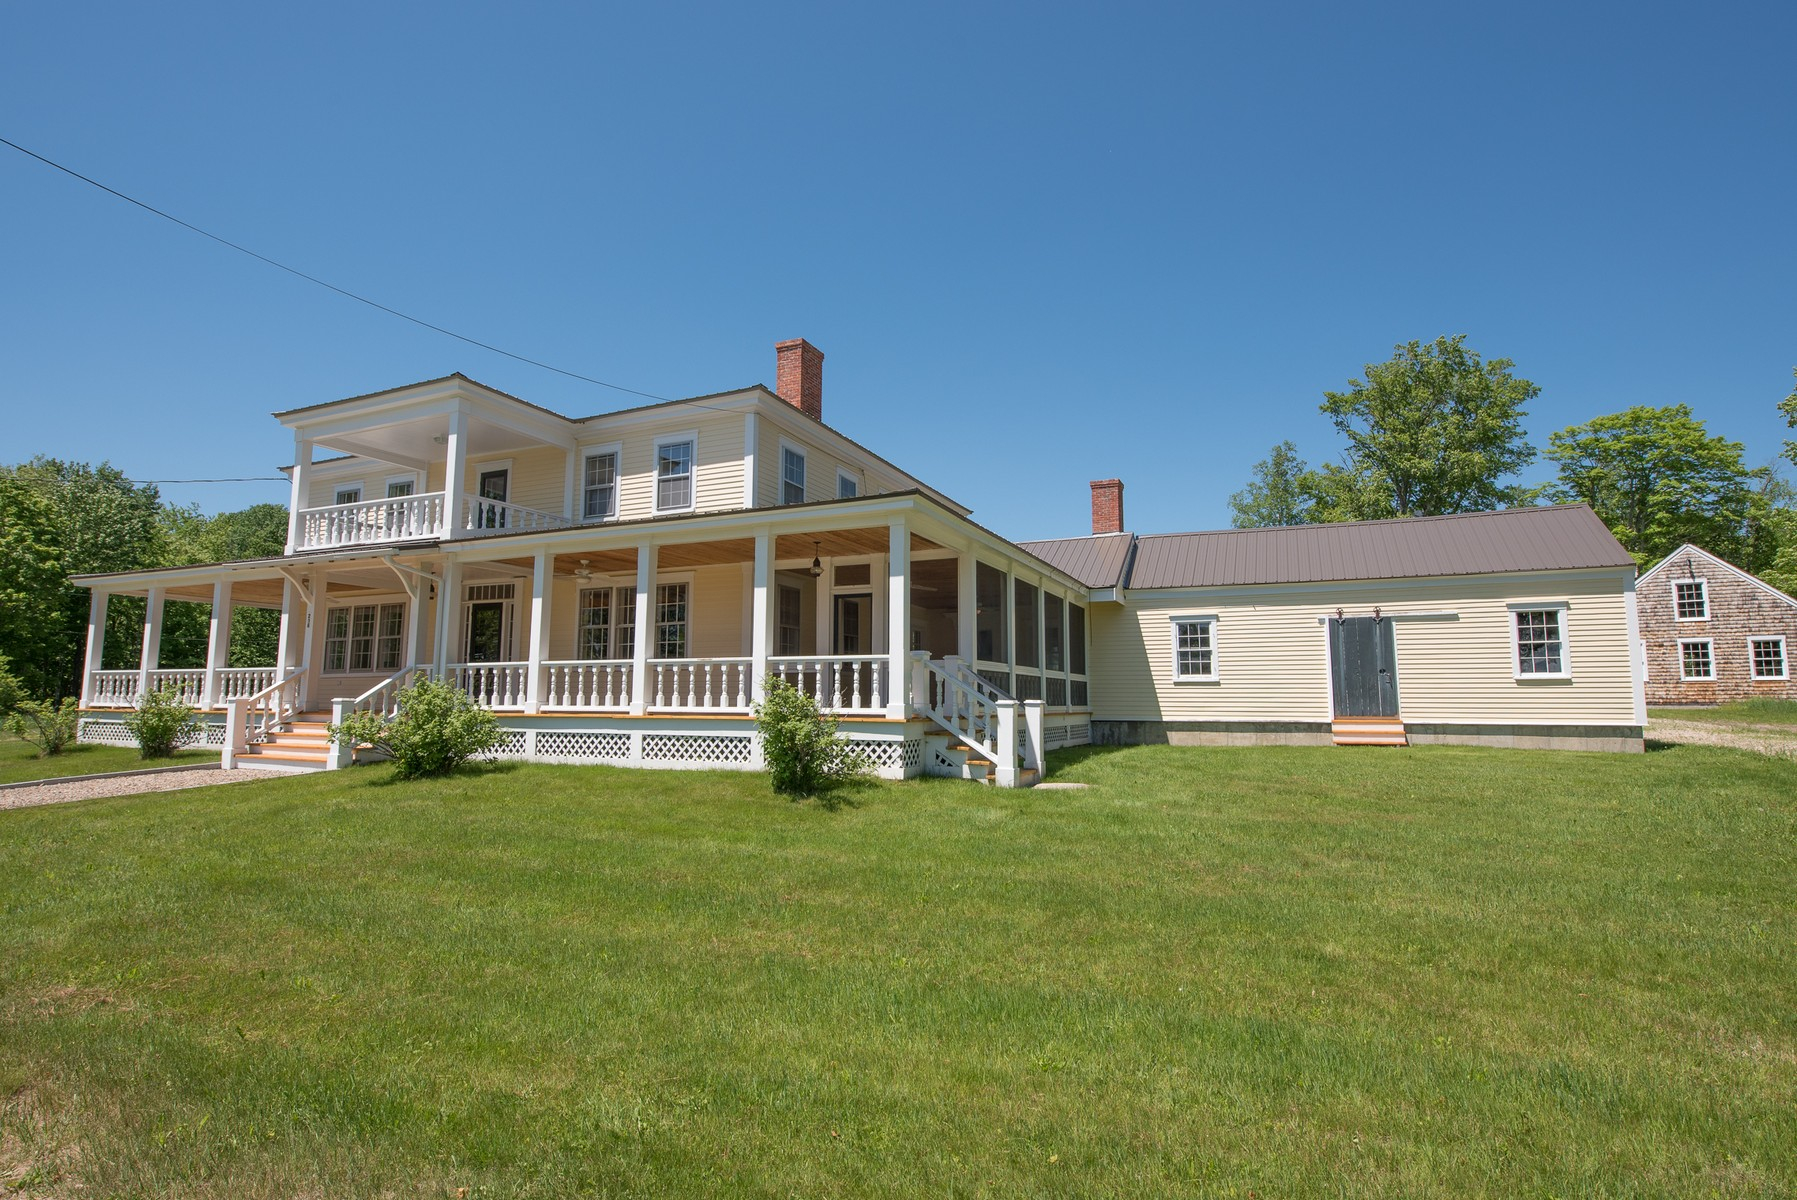 Single Family Home for Sale at 216 Whiteface Intervale Rd, Sandwich Sandwich, New Hampshire, 03259 United States